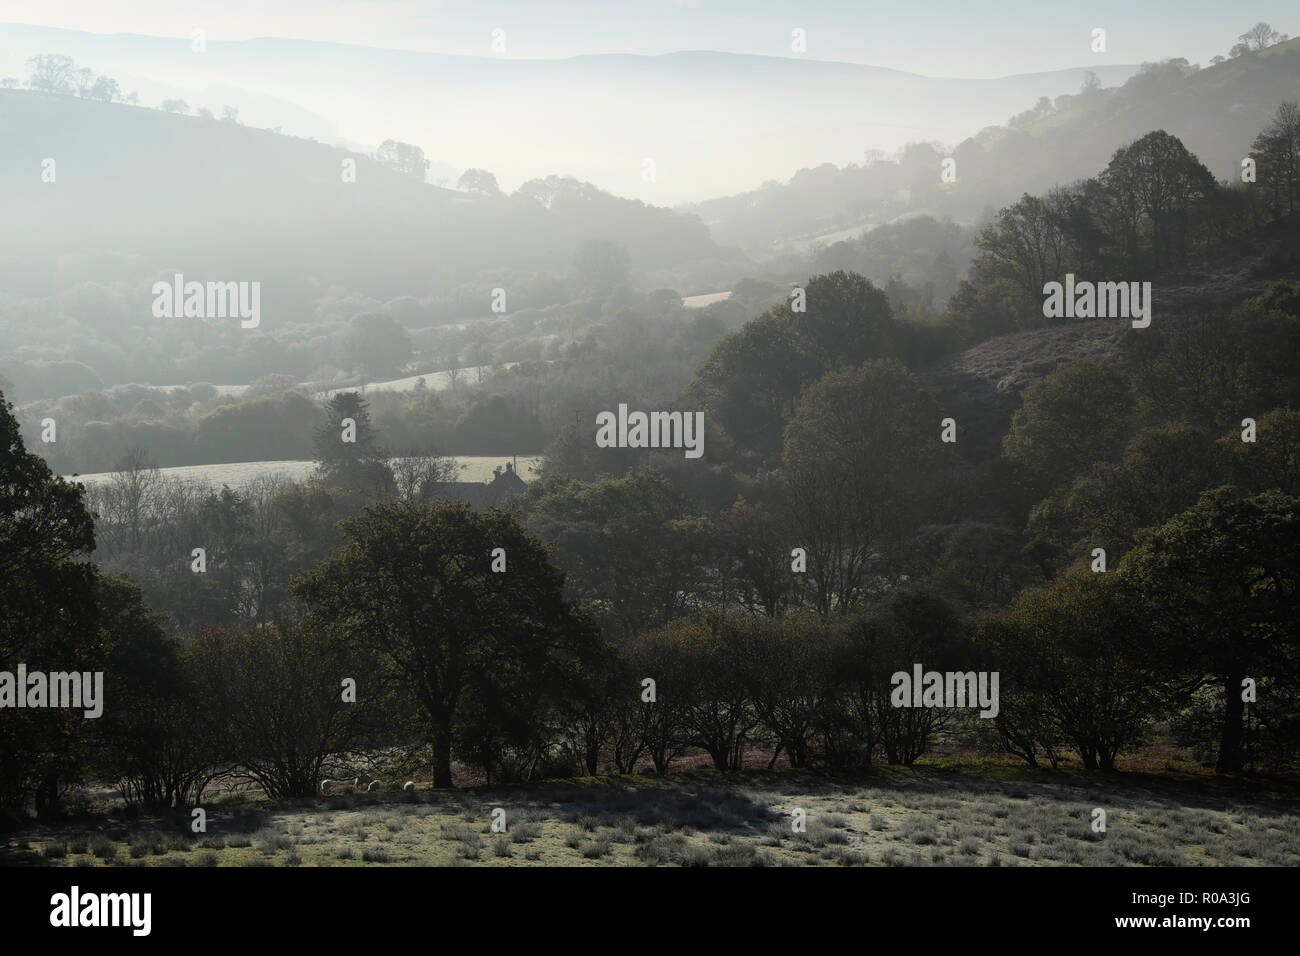 Country cottage in a misty Welsh valley wooded landscape in October autumn  Carmarthenshire, Wales UK  KATHY DEWITT - Stock Image